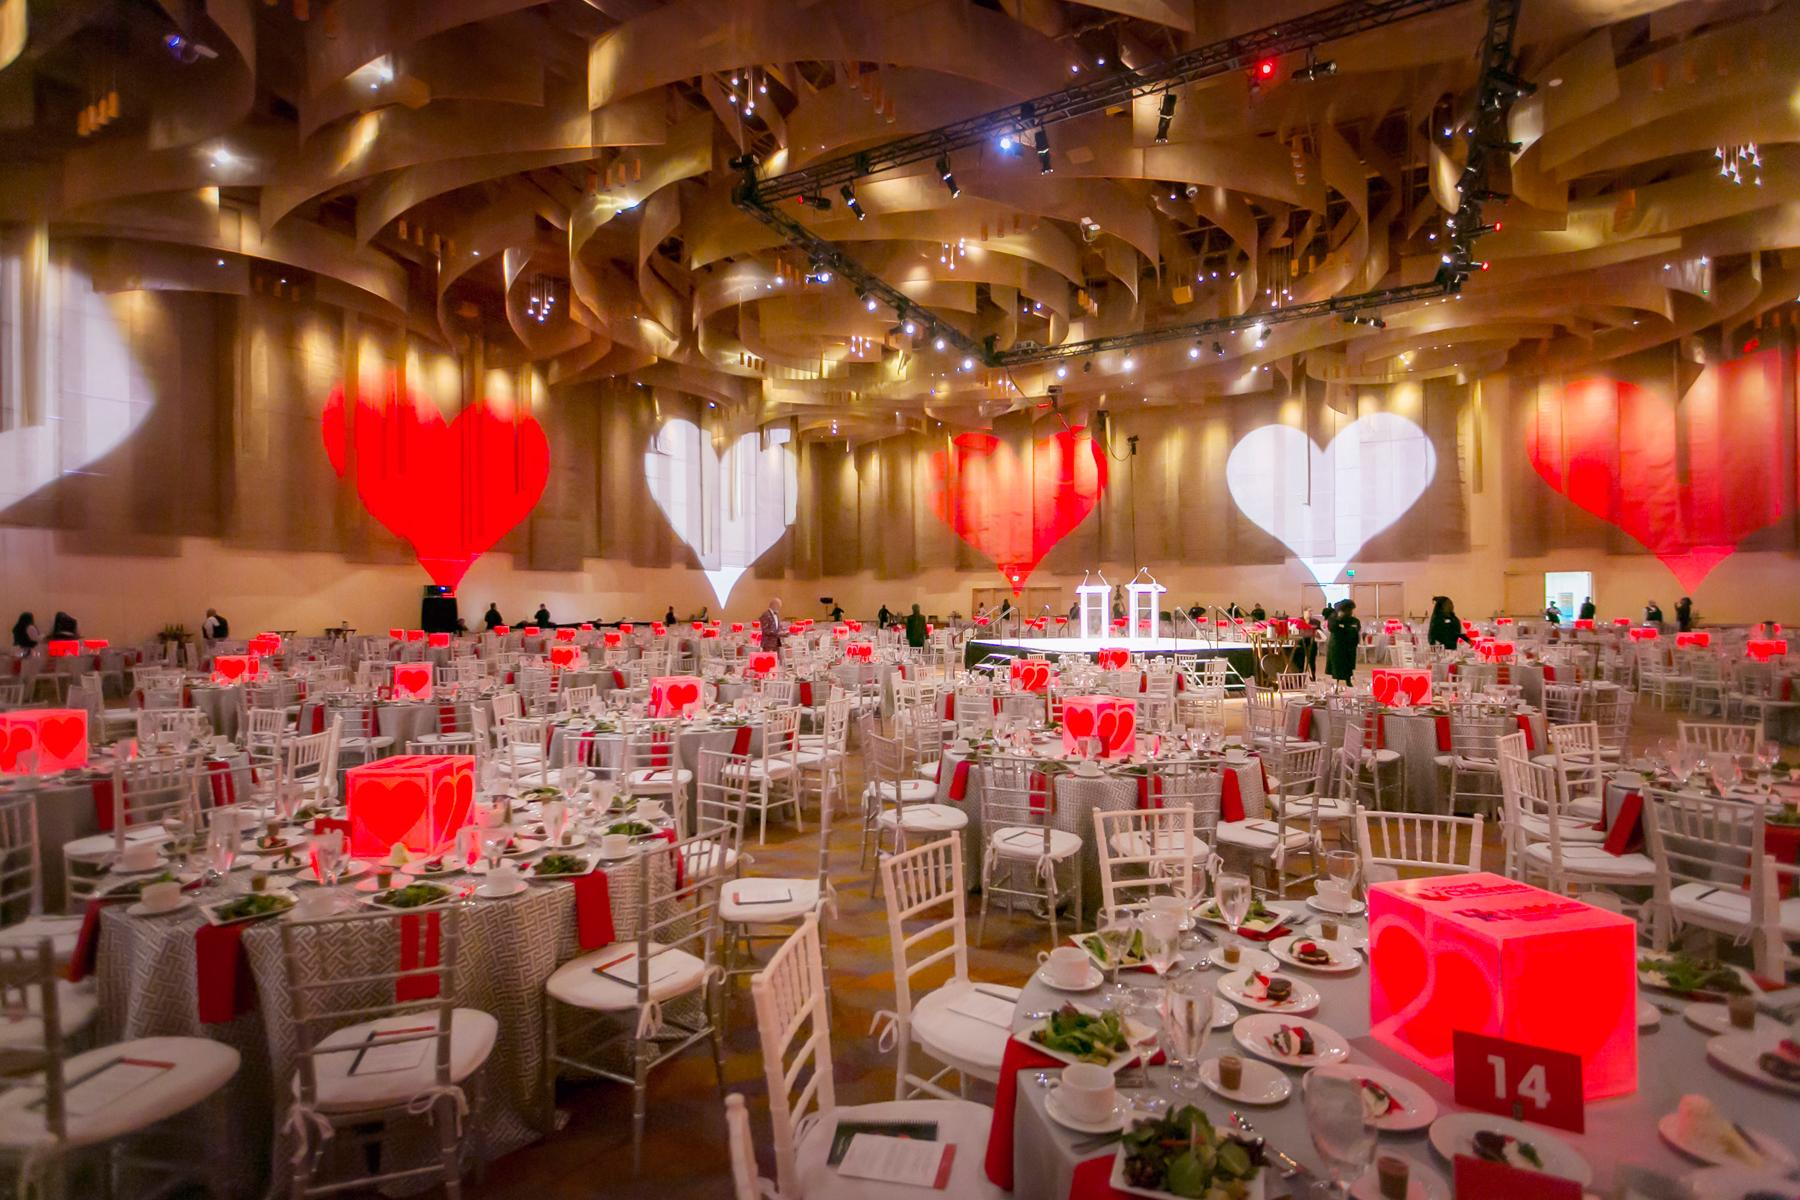 The 25th annual Cincinnati Heart Ball, a fundraiser for the American Heart Association, took place on Saturday, Feb. 24 at the Duke Energy Convention Center. / Image: Mike Bresnen Photography // Published: 2.25.18